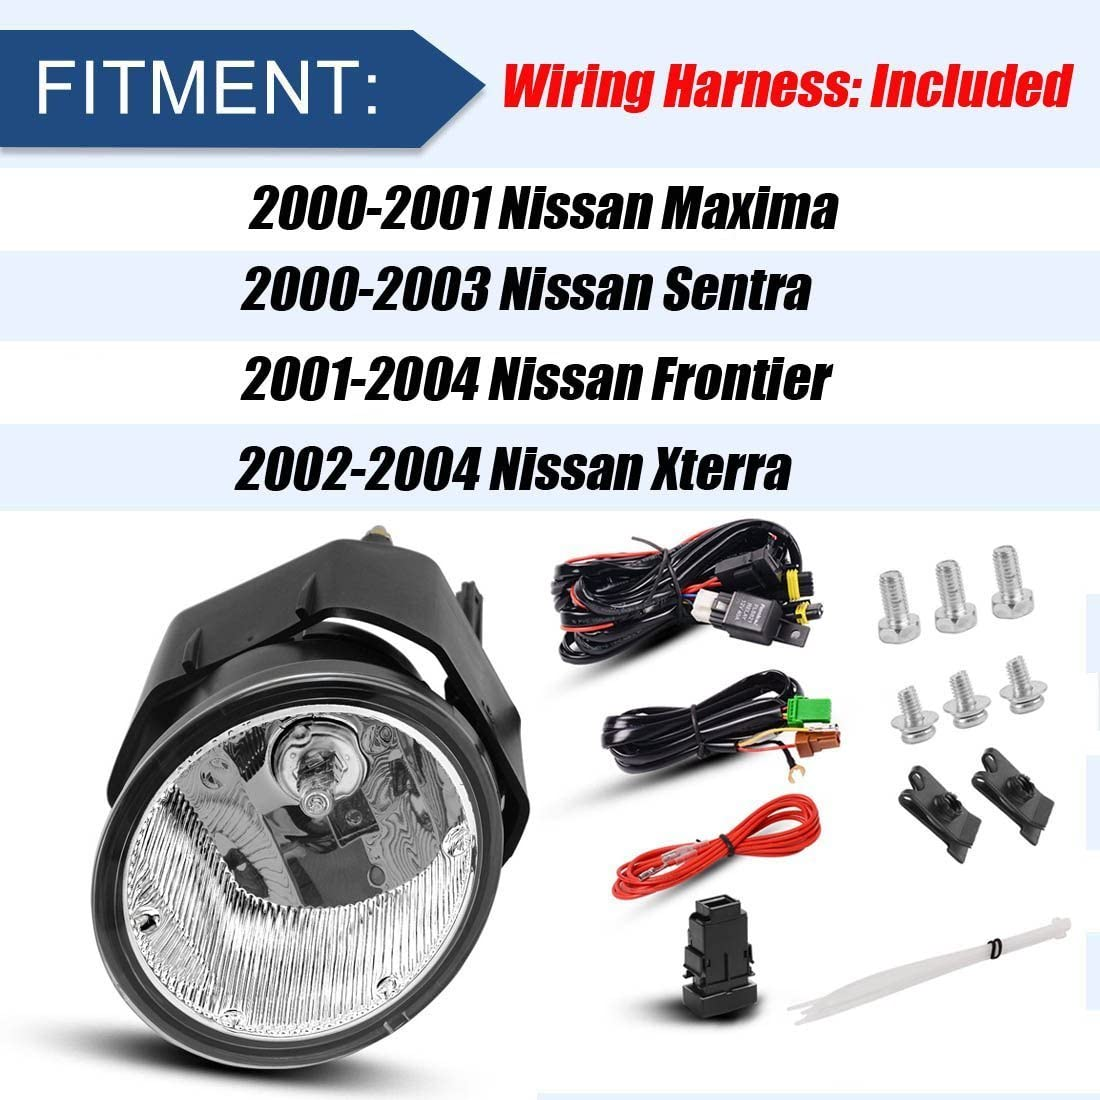 Clear Lens w//Bulbs /& Wiring Harness AUTOSAVER88 Fog Lights H3 12V 55W Halogen Lamp For Nissan Sentra 2000-2003 Frontier 2001-2004 Xterra 2002-2004 Maxima 2000-2001